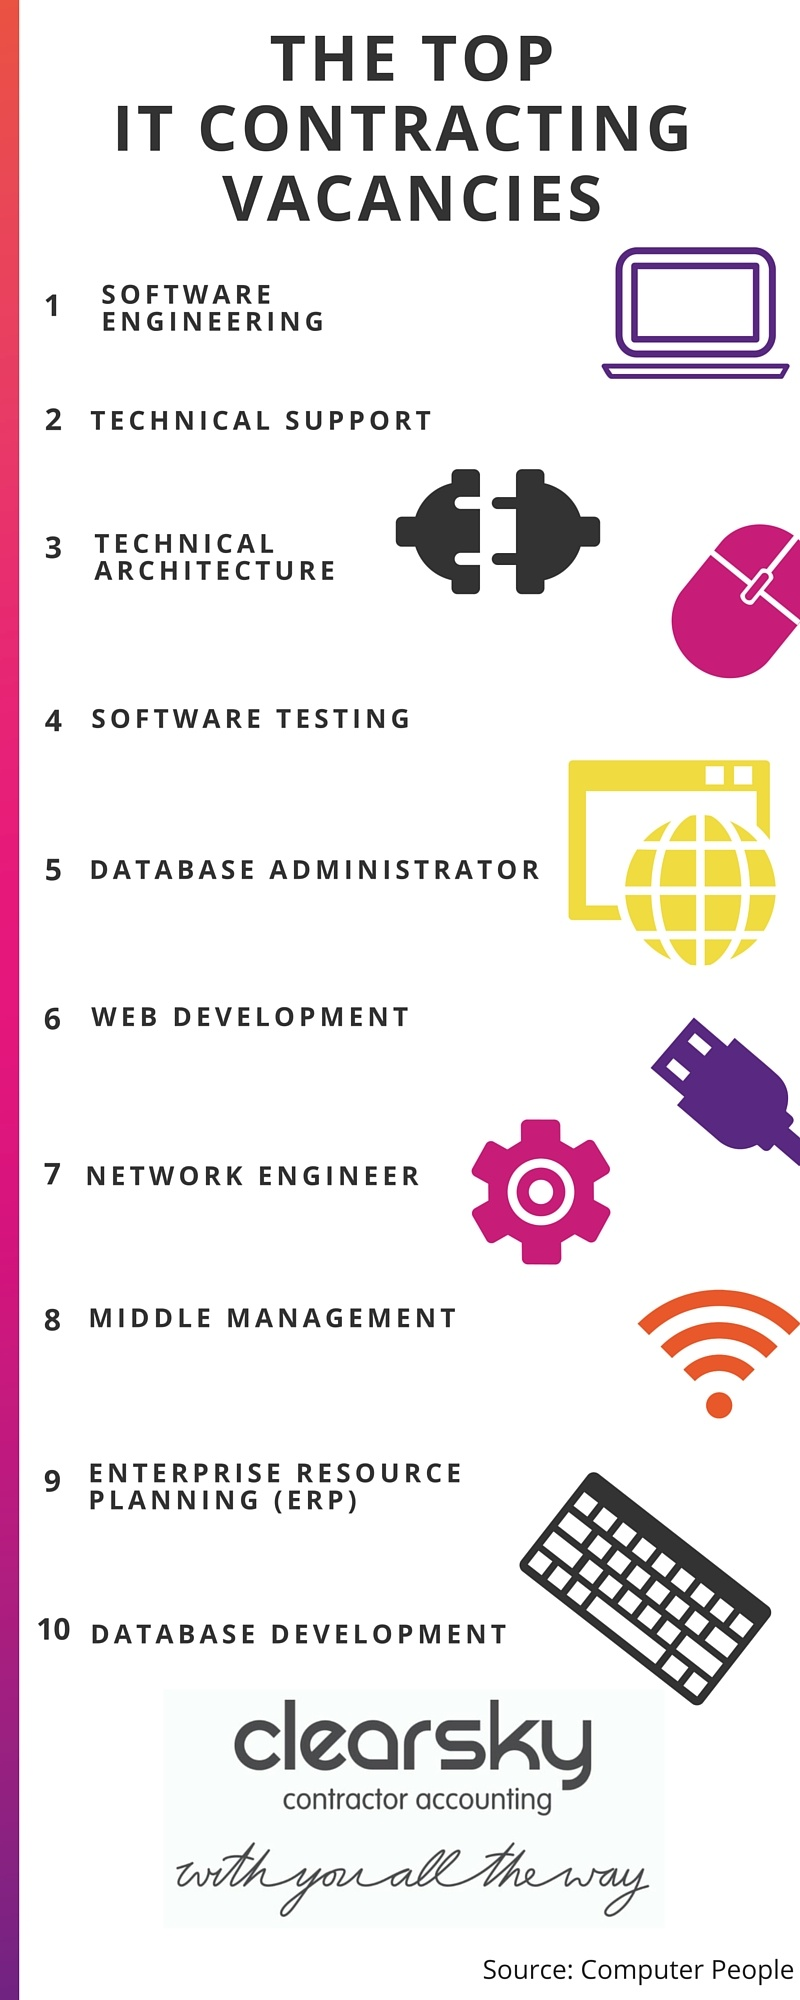 The top IT contracting jobs